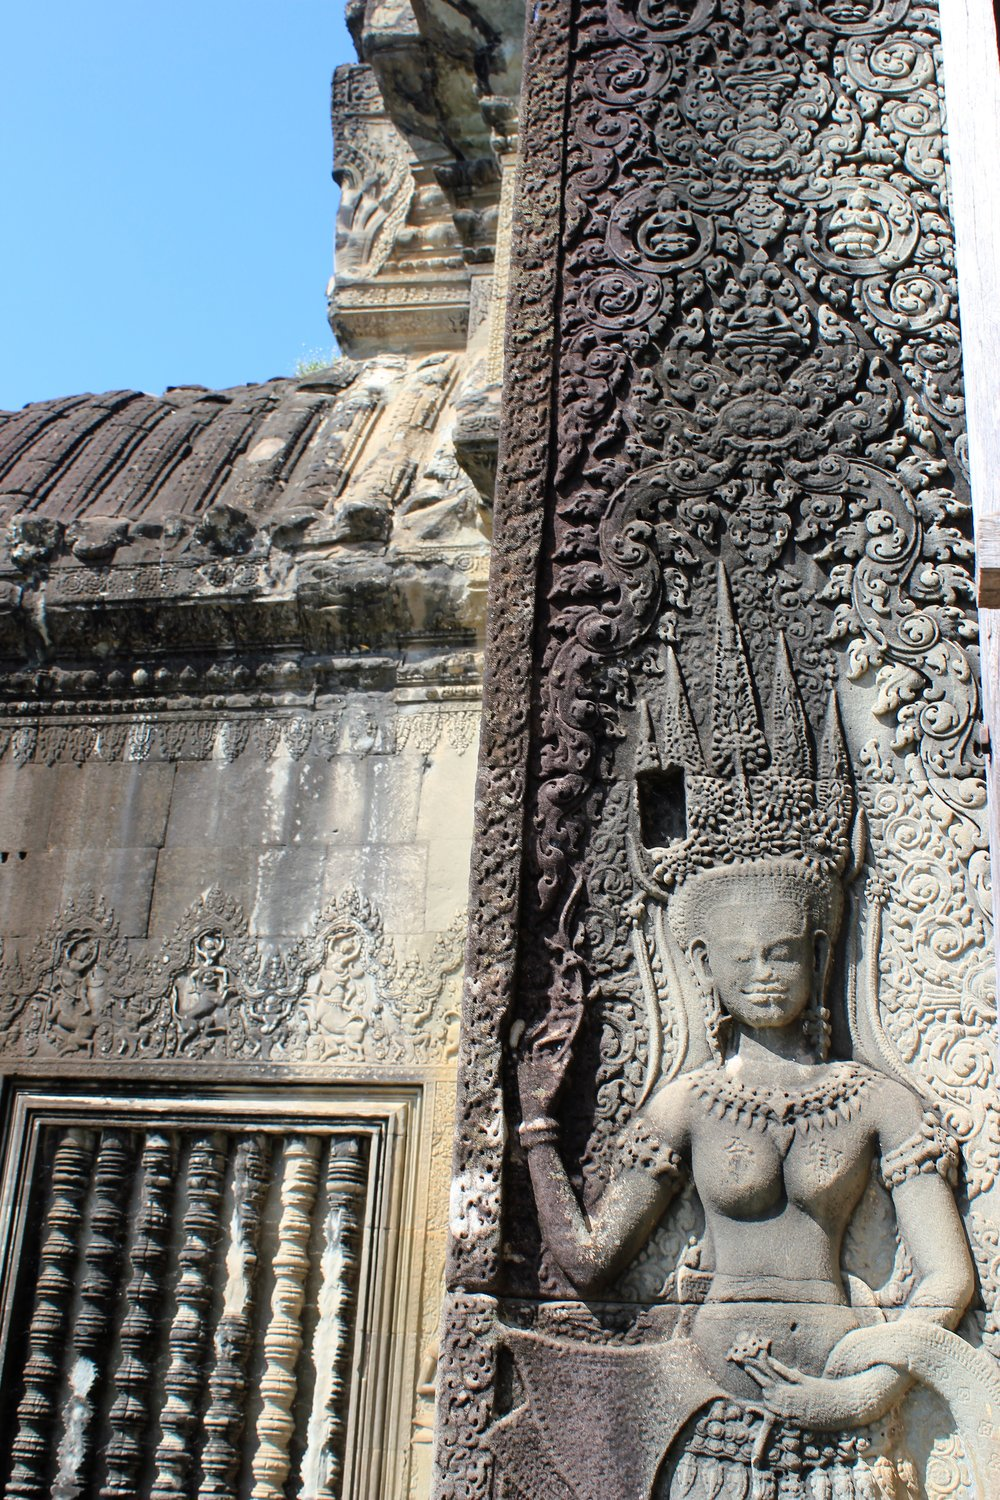 Intraquite detail at Angkor Wat